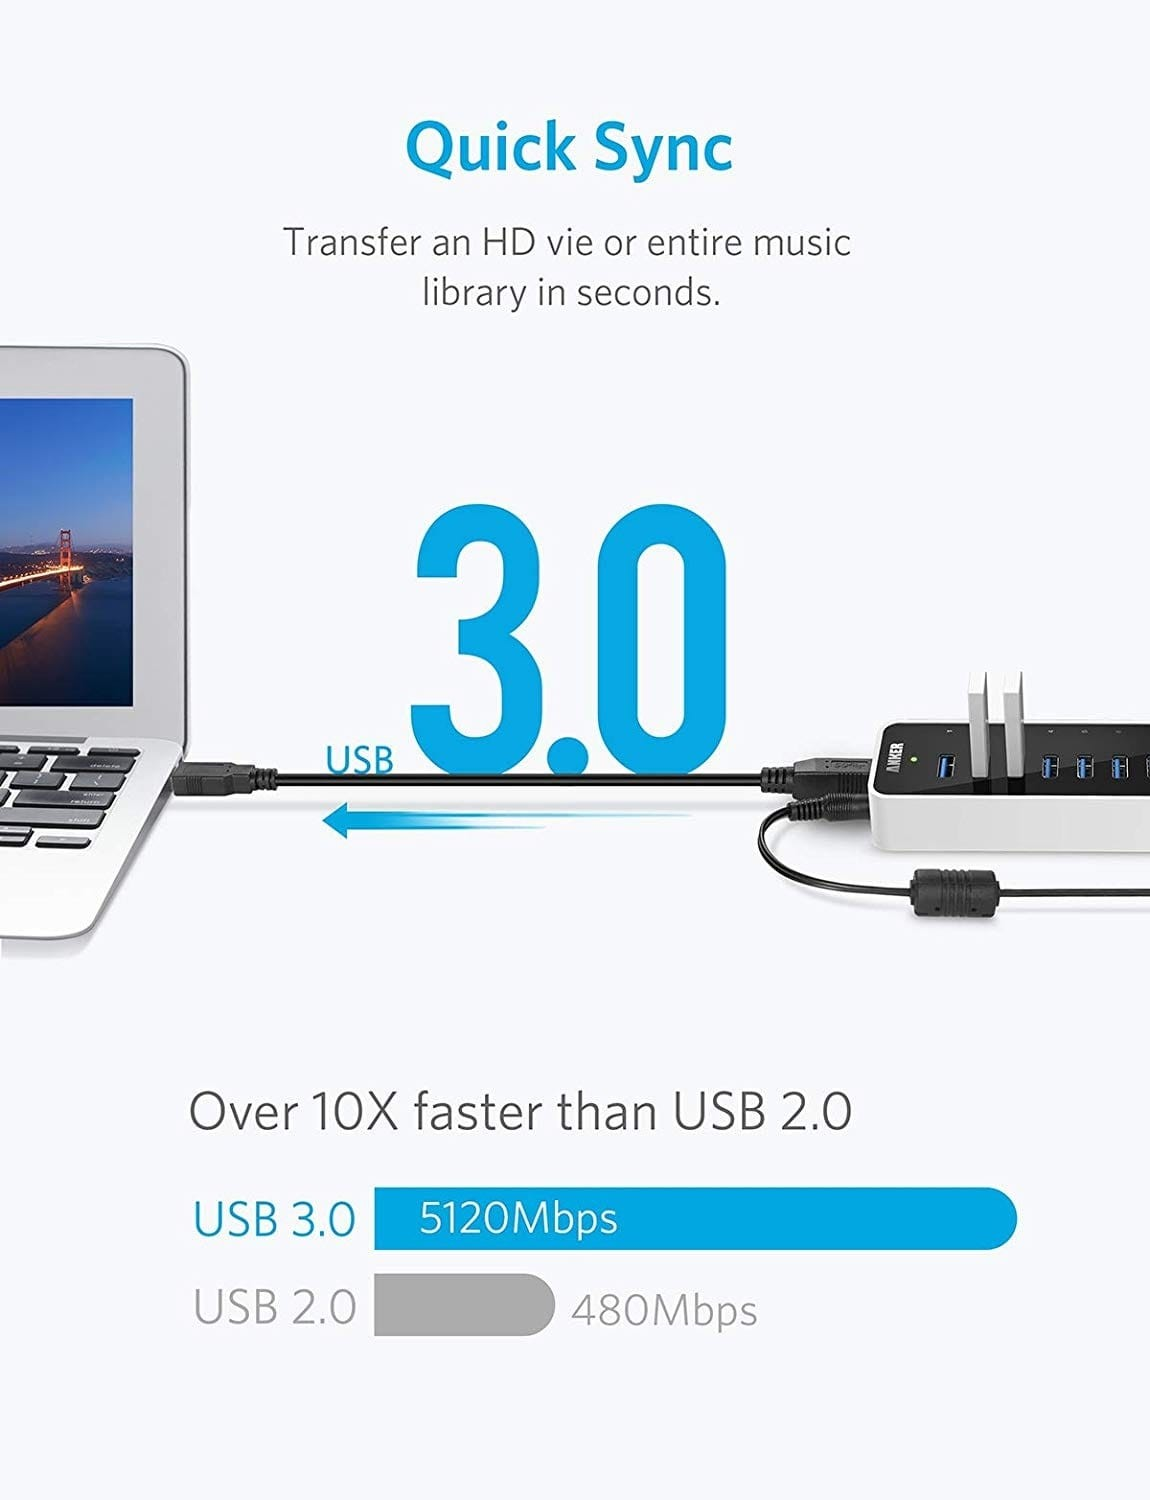 Anker Powered USB 3.0 Hub - SuperSpeed 10-Port Hub Including a BC 1.2 Charging Port with 60W (12V / 5A) Power Adapter, 68ANHUB-B10A